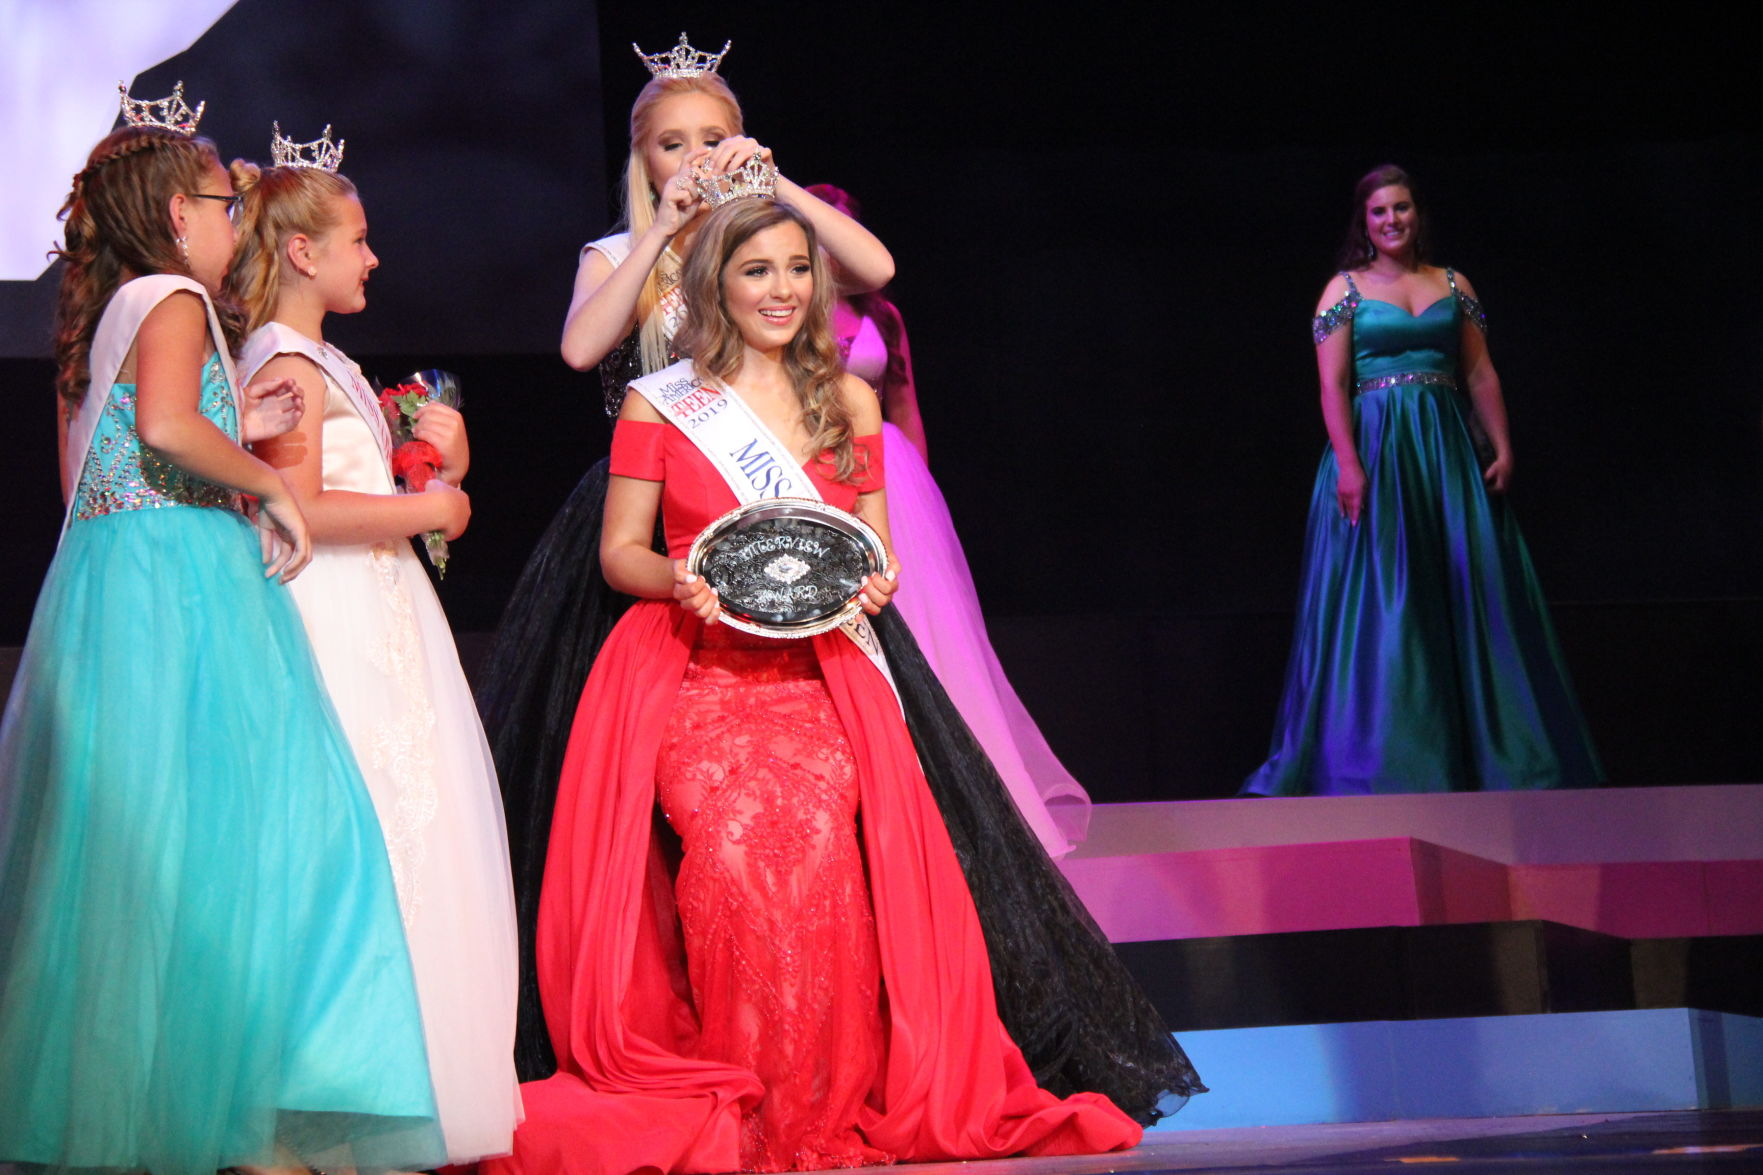 New Albany student crowned Miss Ohio's Outstanding Teen